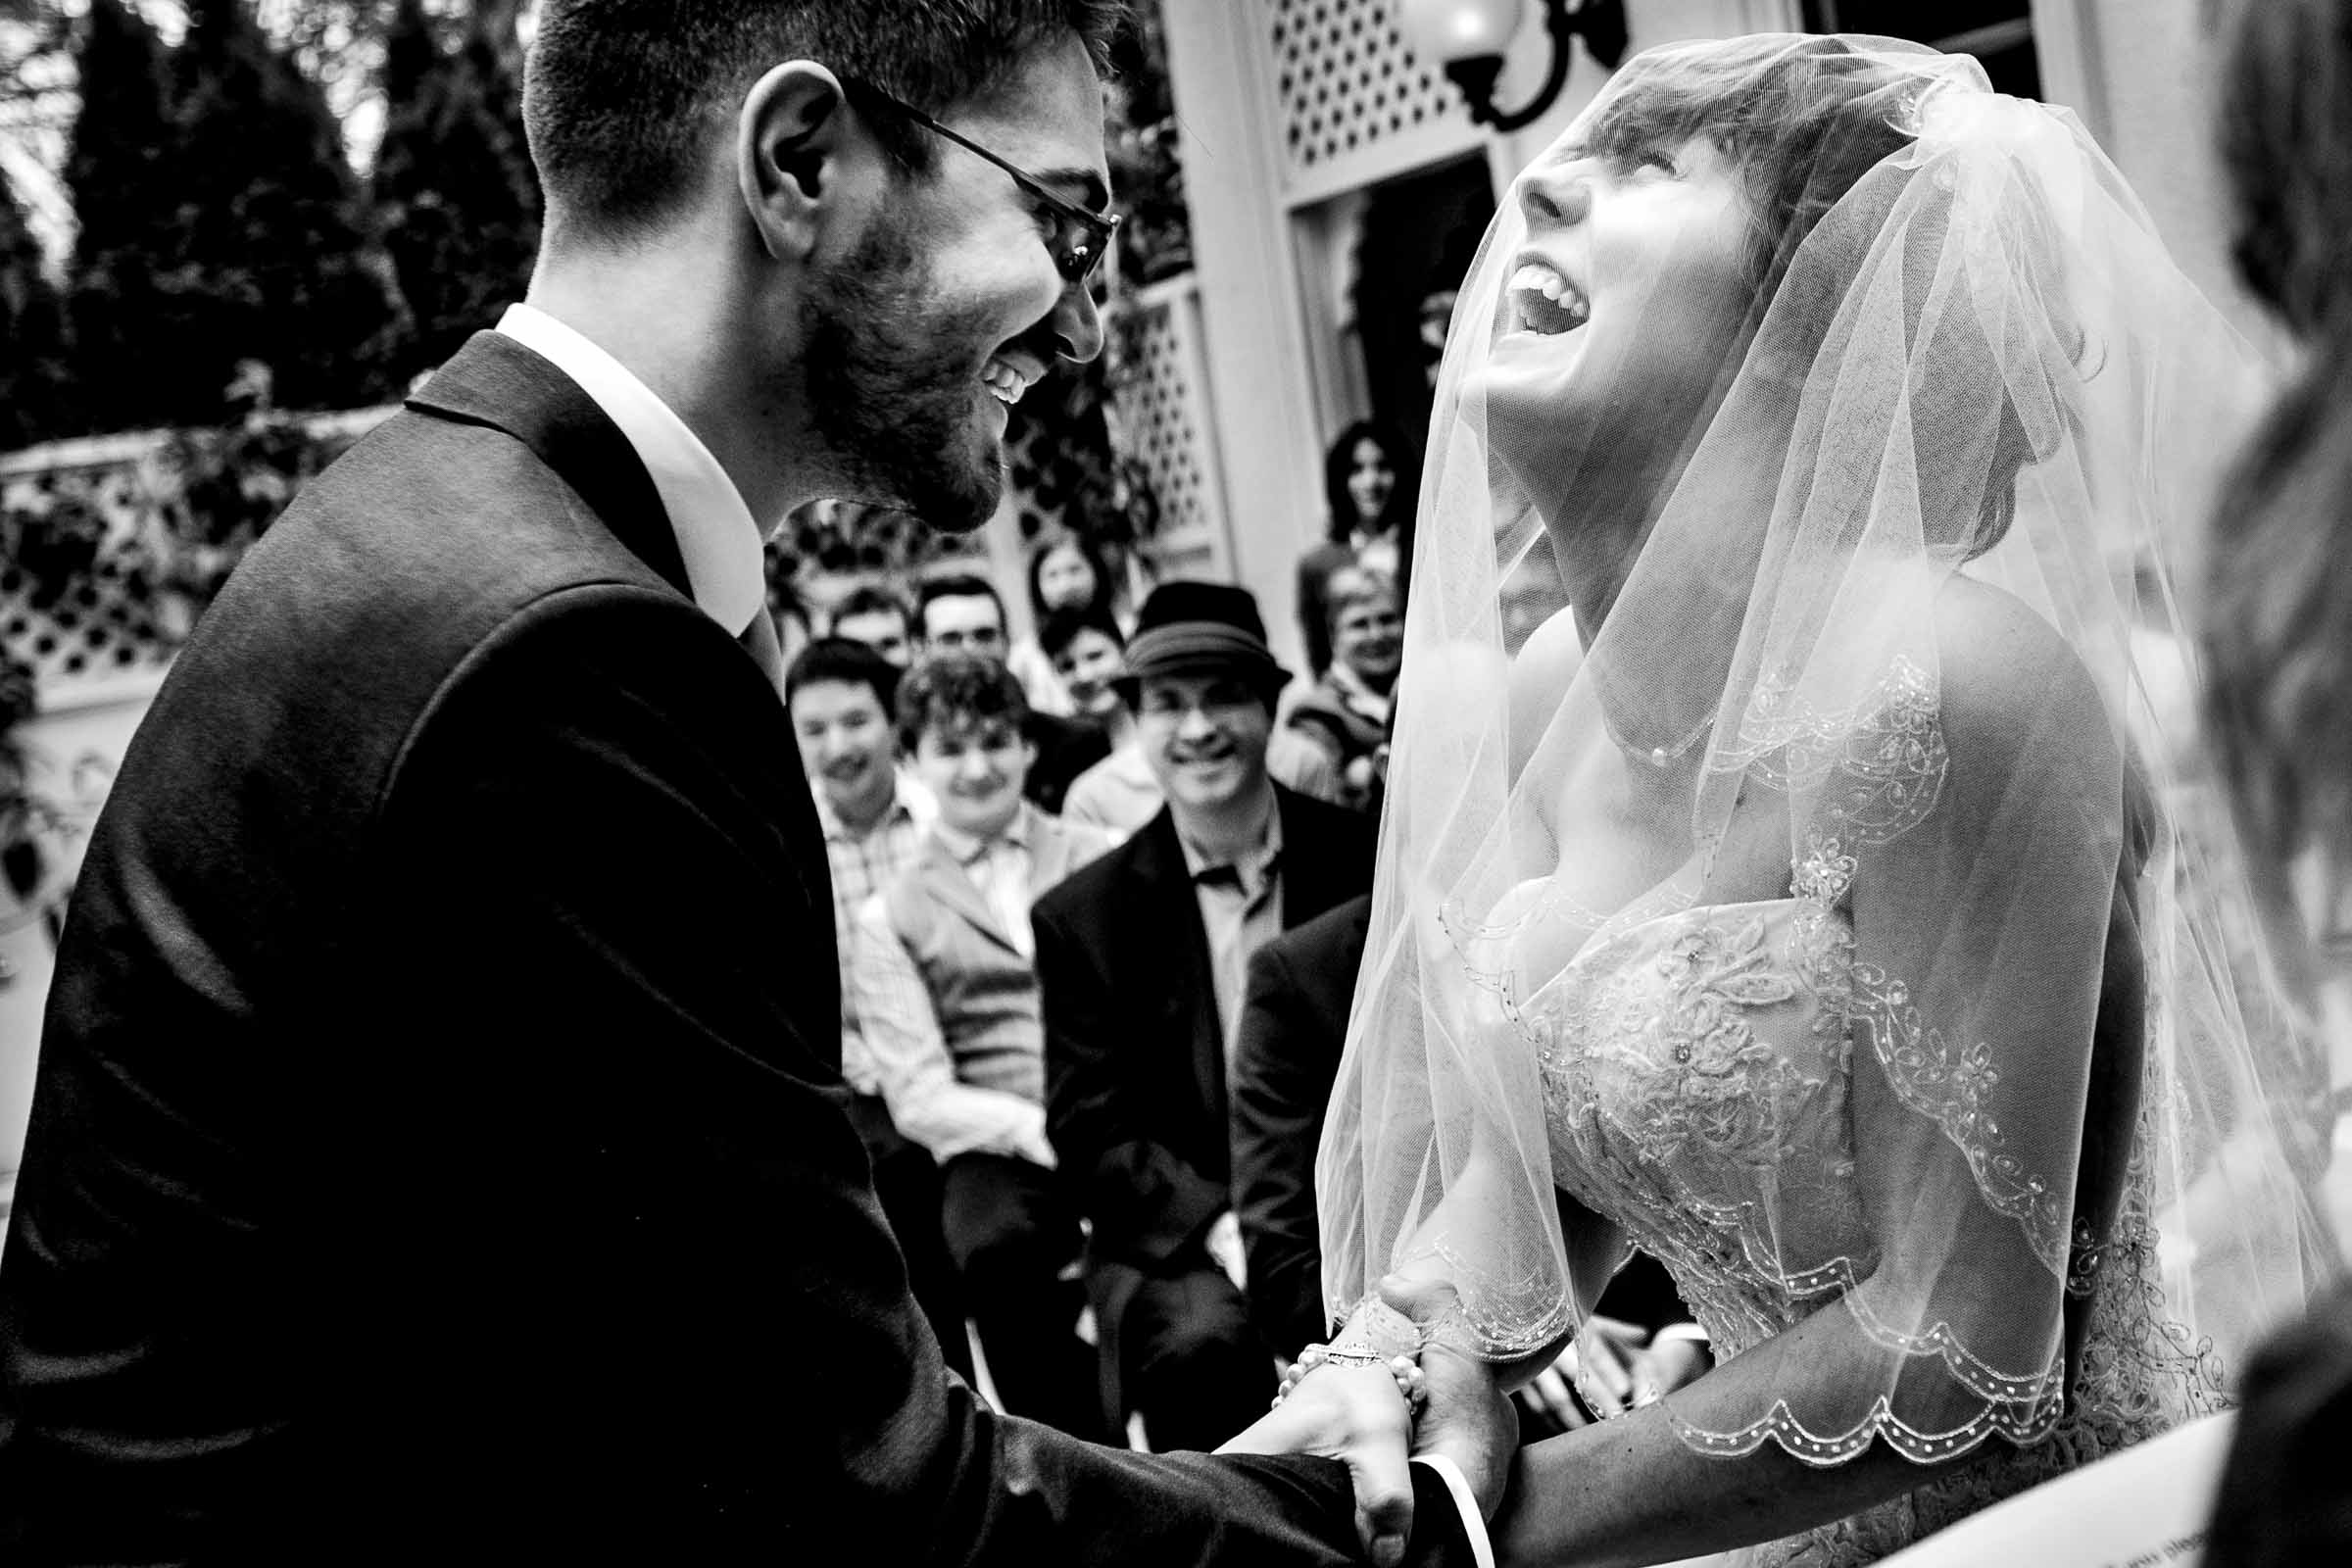 Bride and groom laughing during ceremony - photo by JOS & TREE